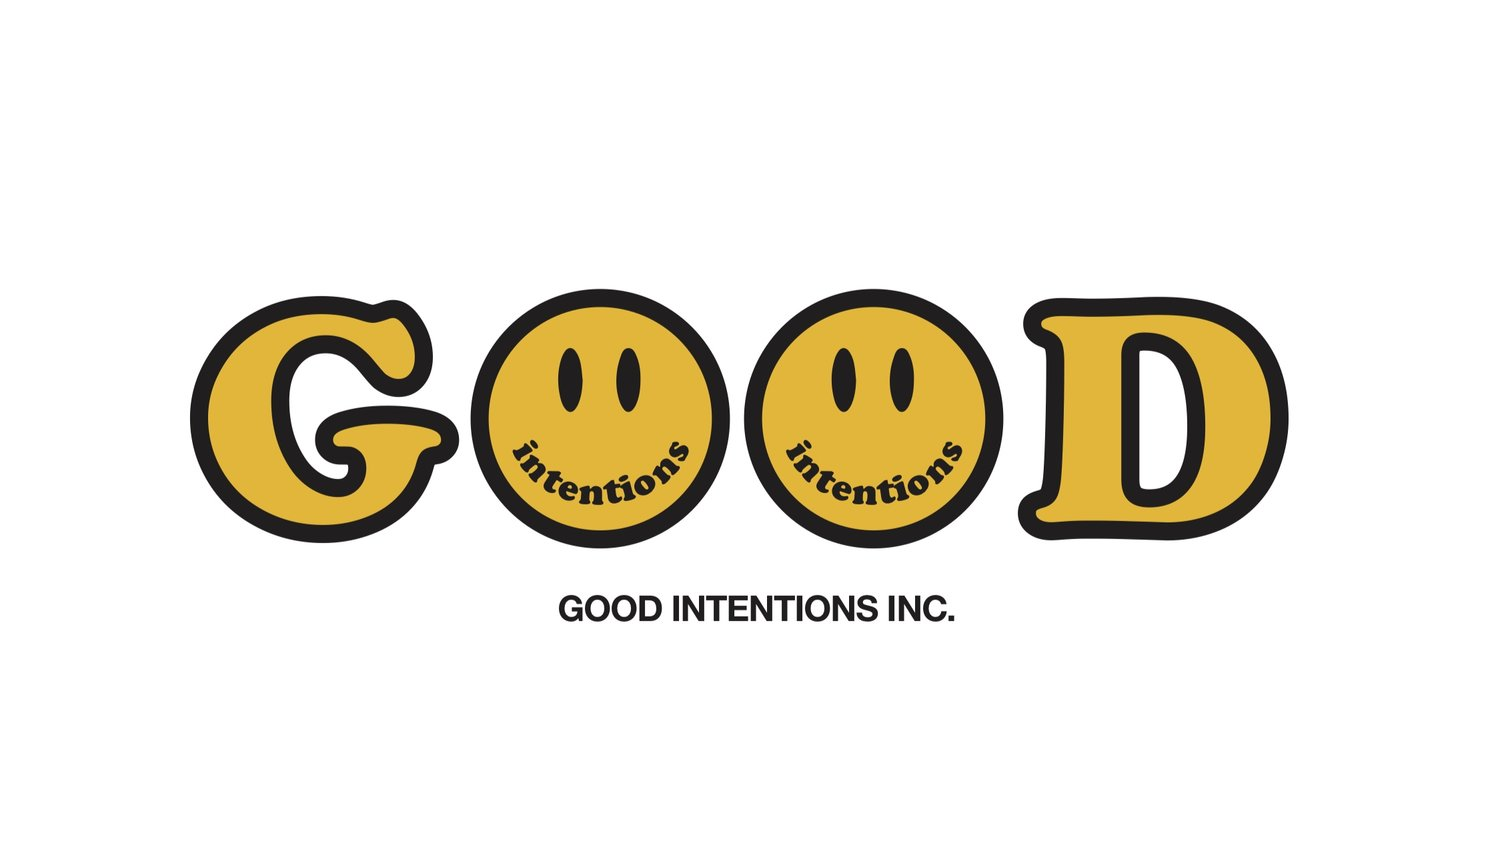 GOOD INTENSIONS INC.